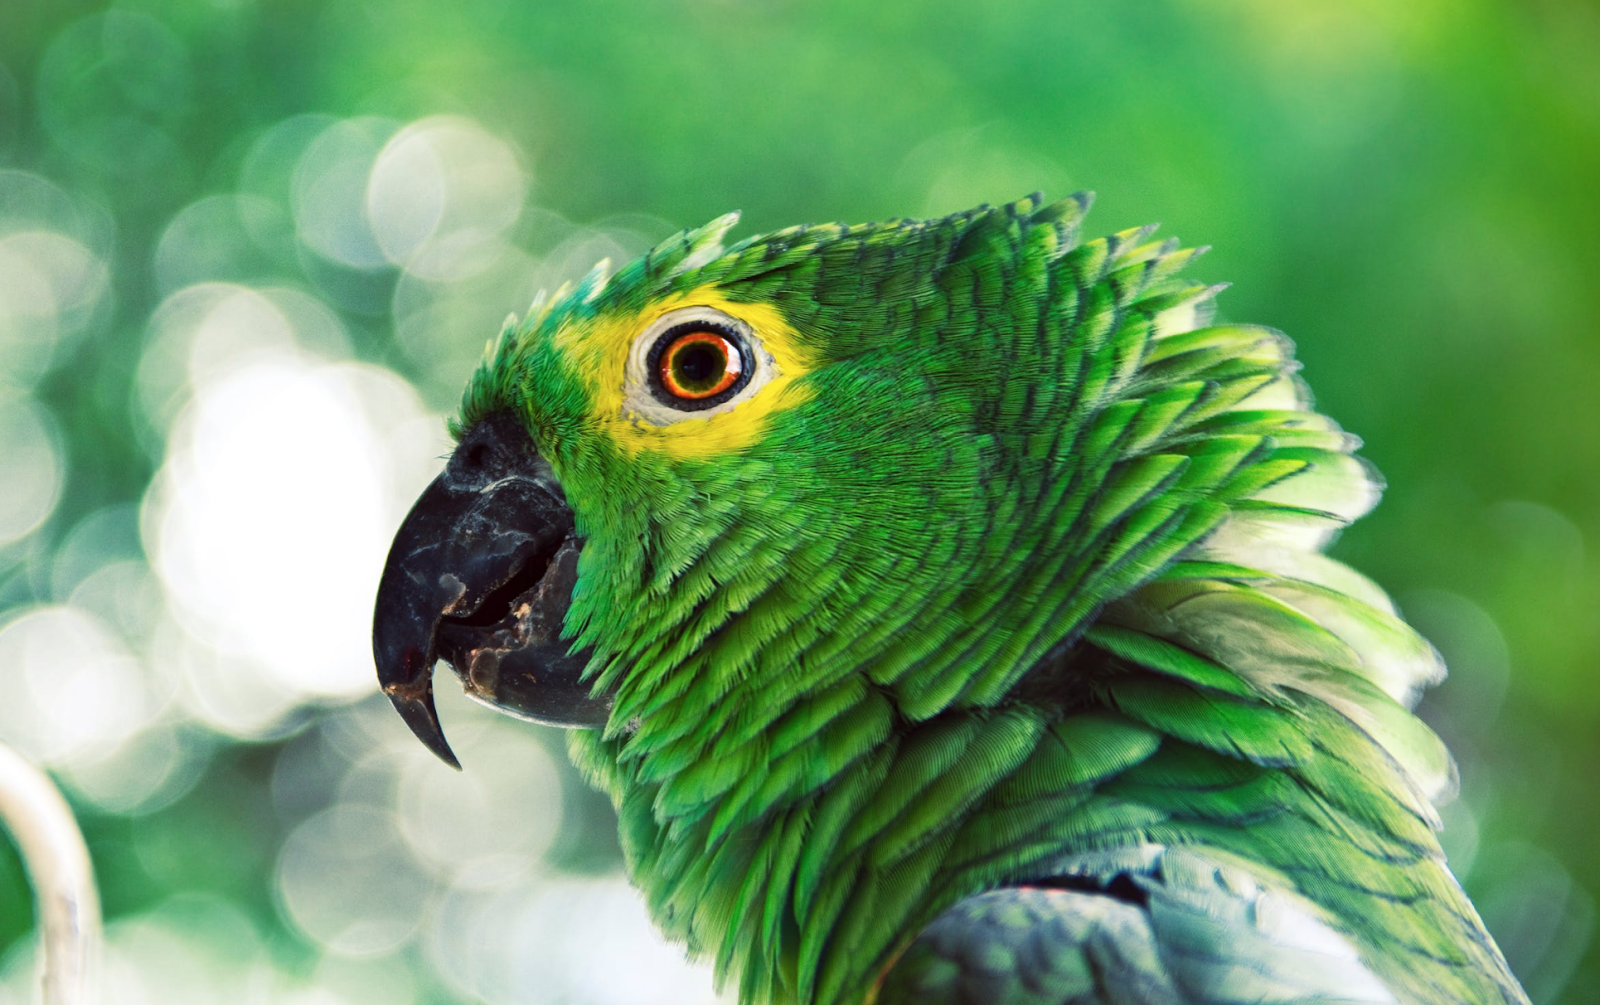 A green parrot in profile